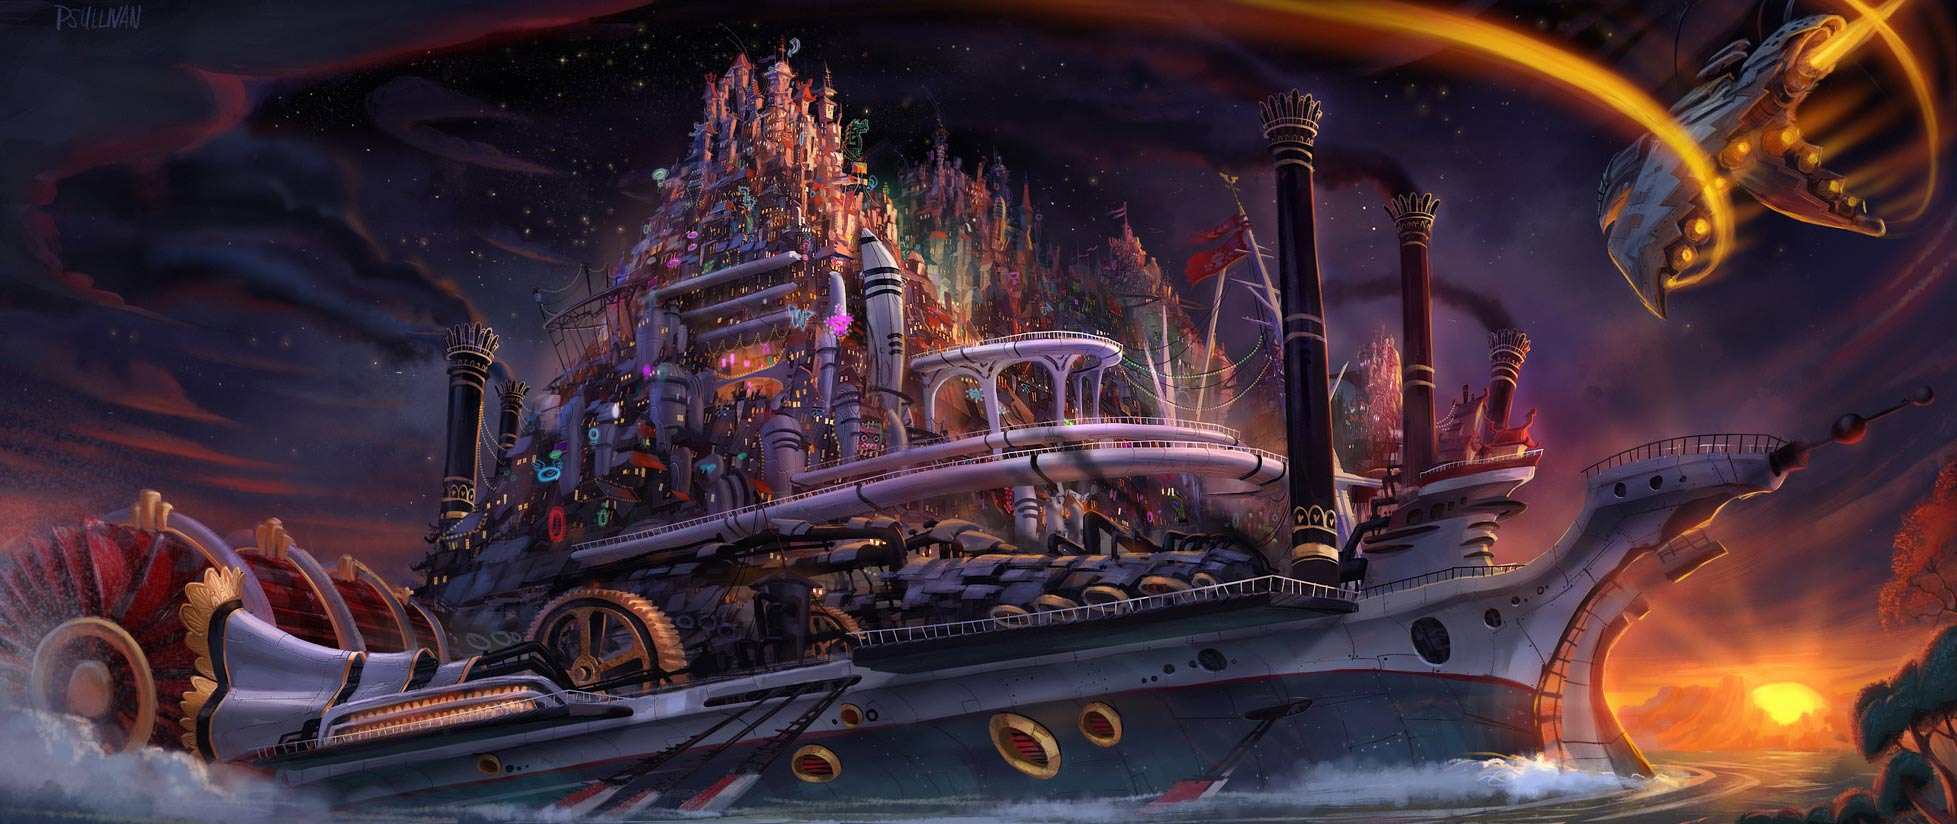 Director of 'The Book of Life' Announces Upcoming Kung Fu Space Western